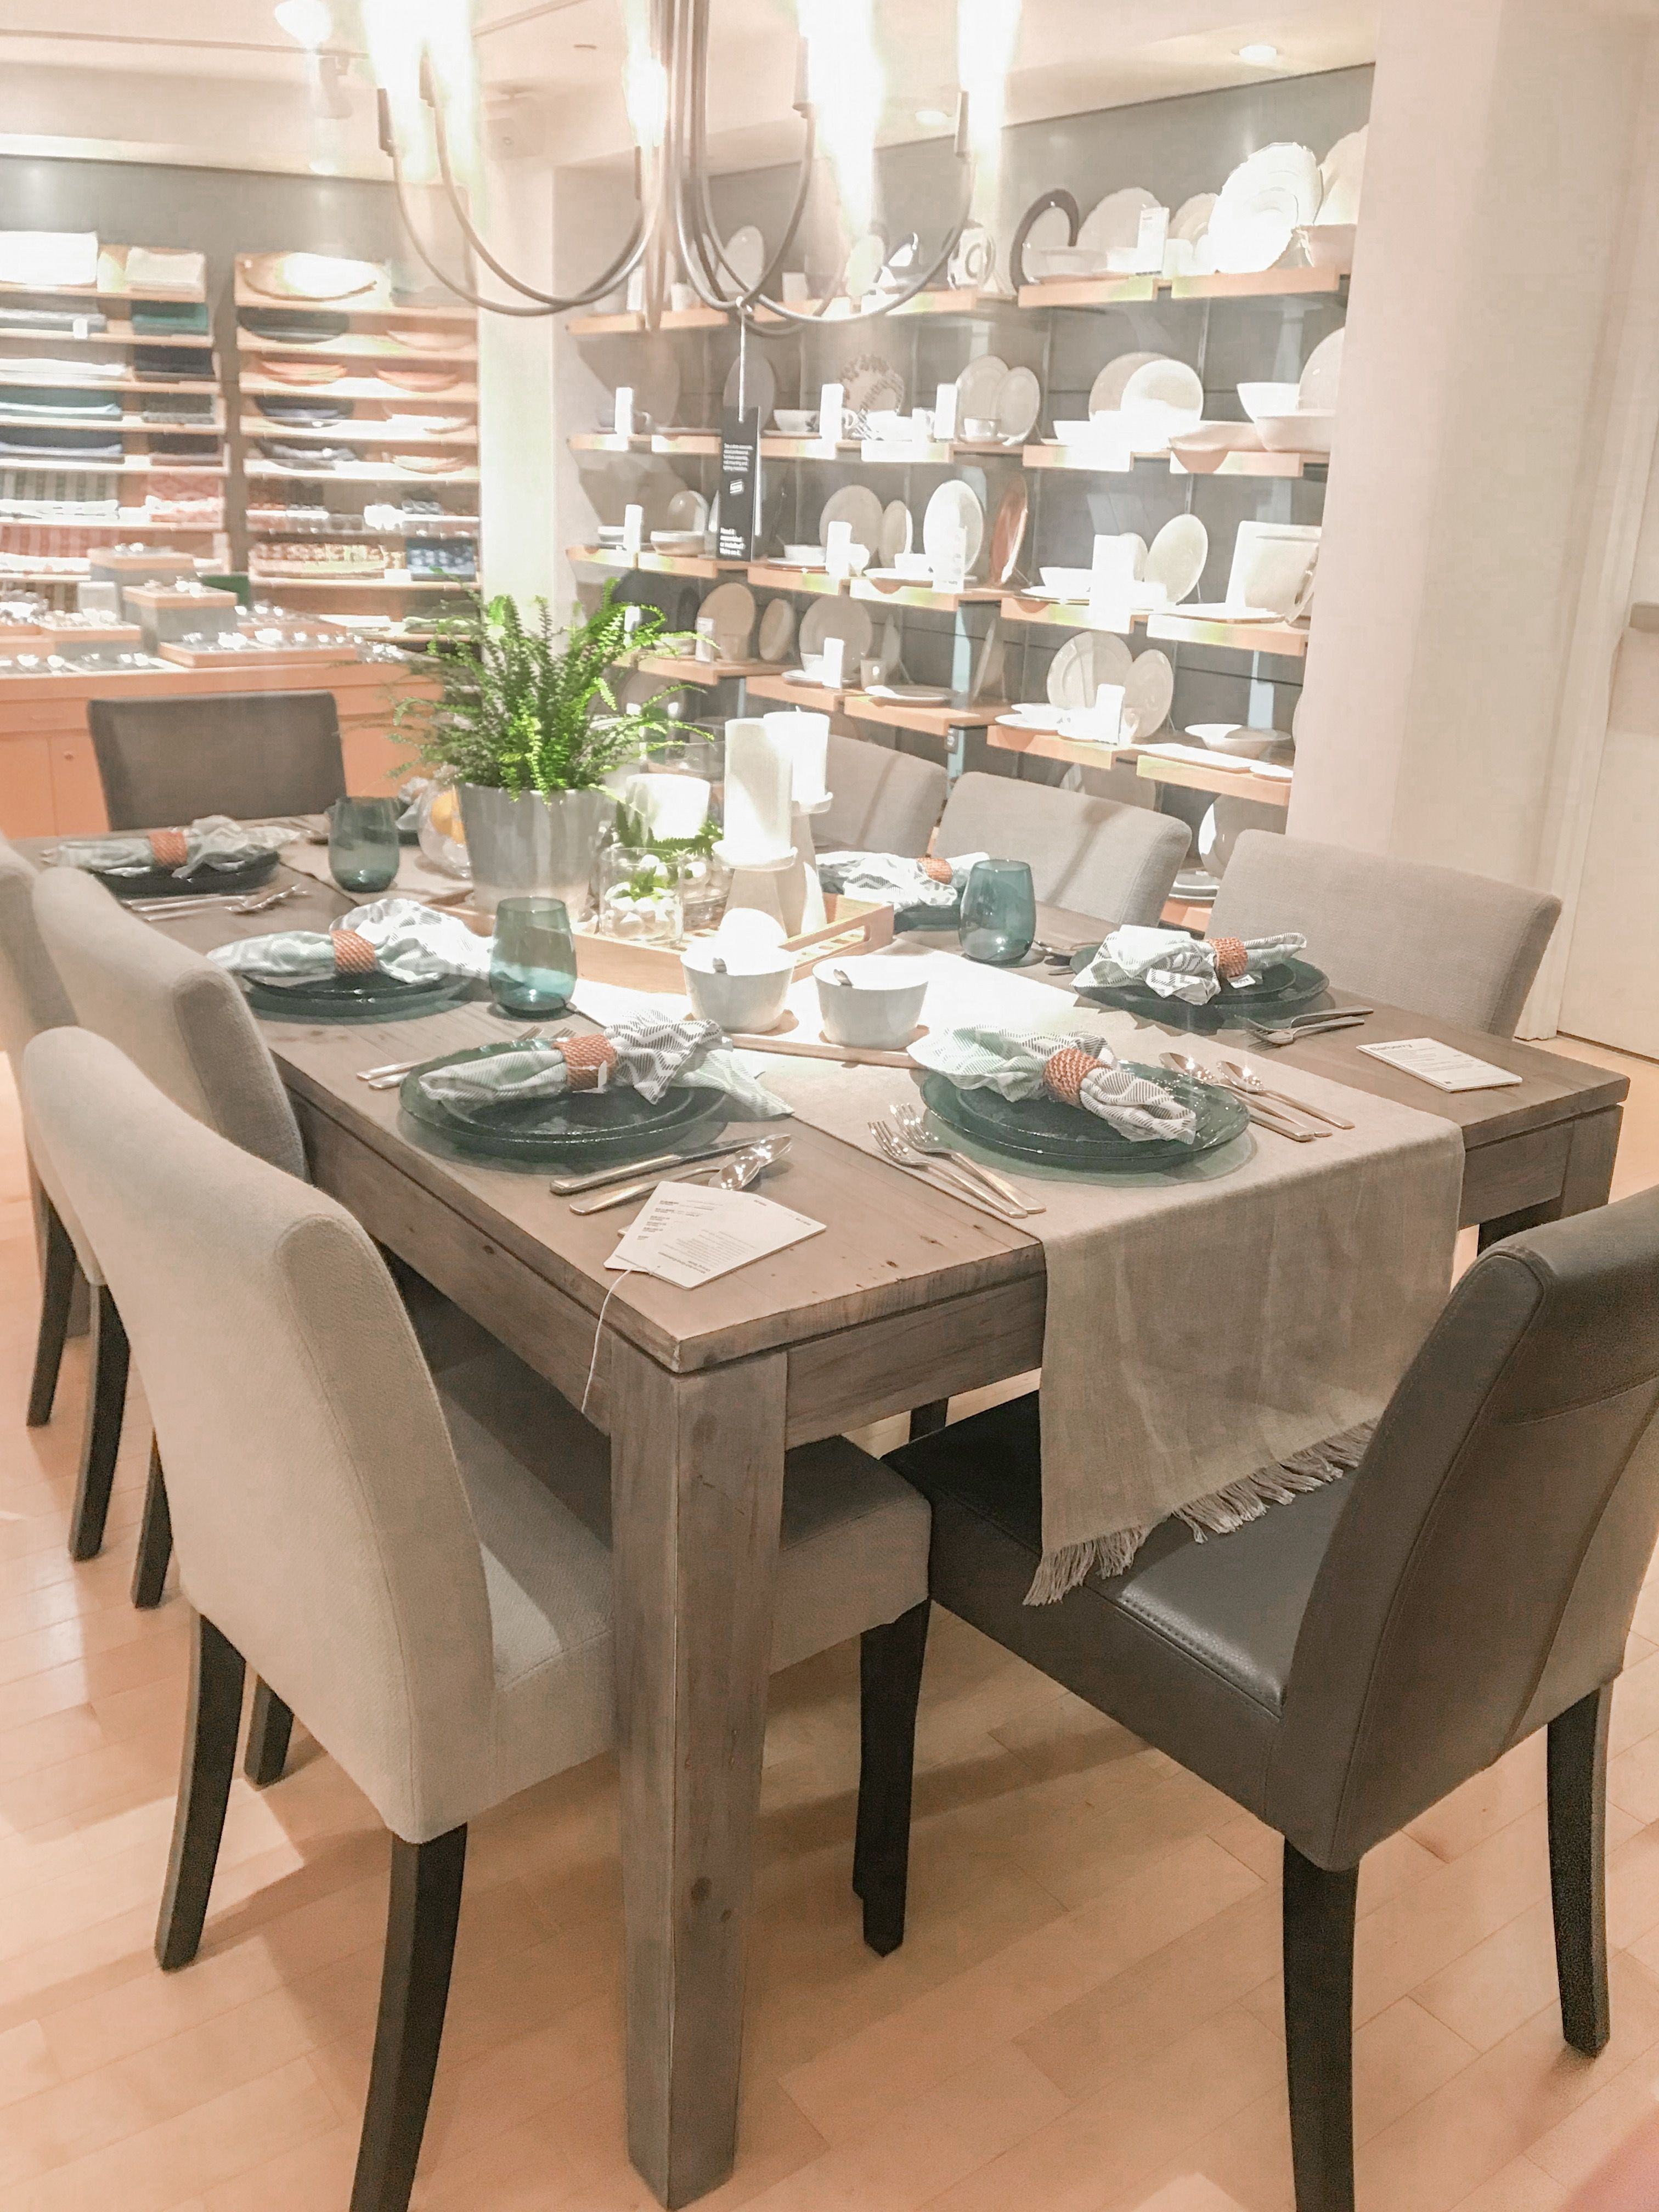 Crate And Barrel Dining Table Home Decor Crate And Barrel Decor